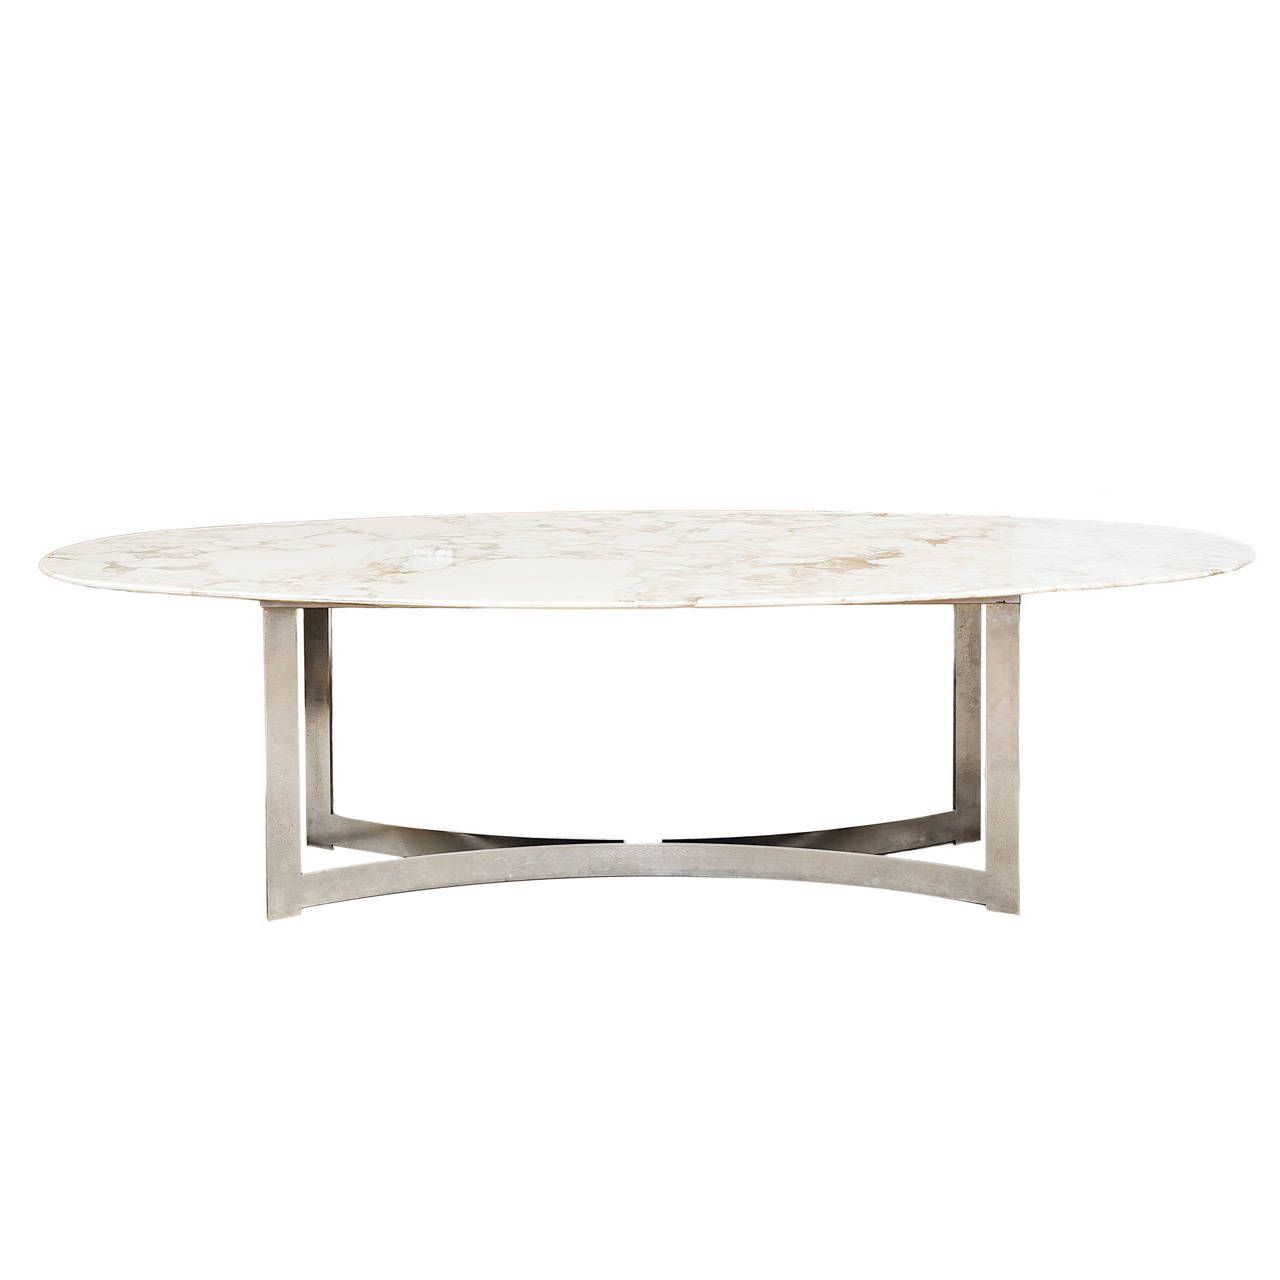 Oval marble dining table - Oval Marble Top Dining Table